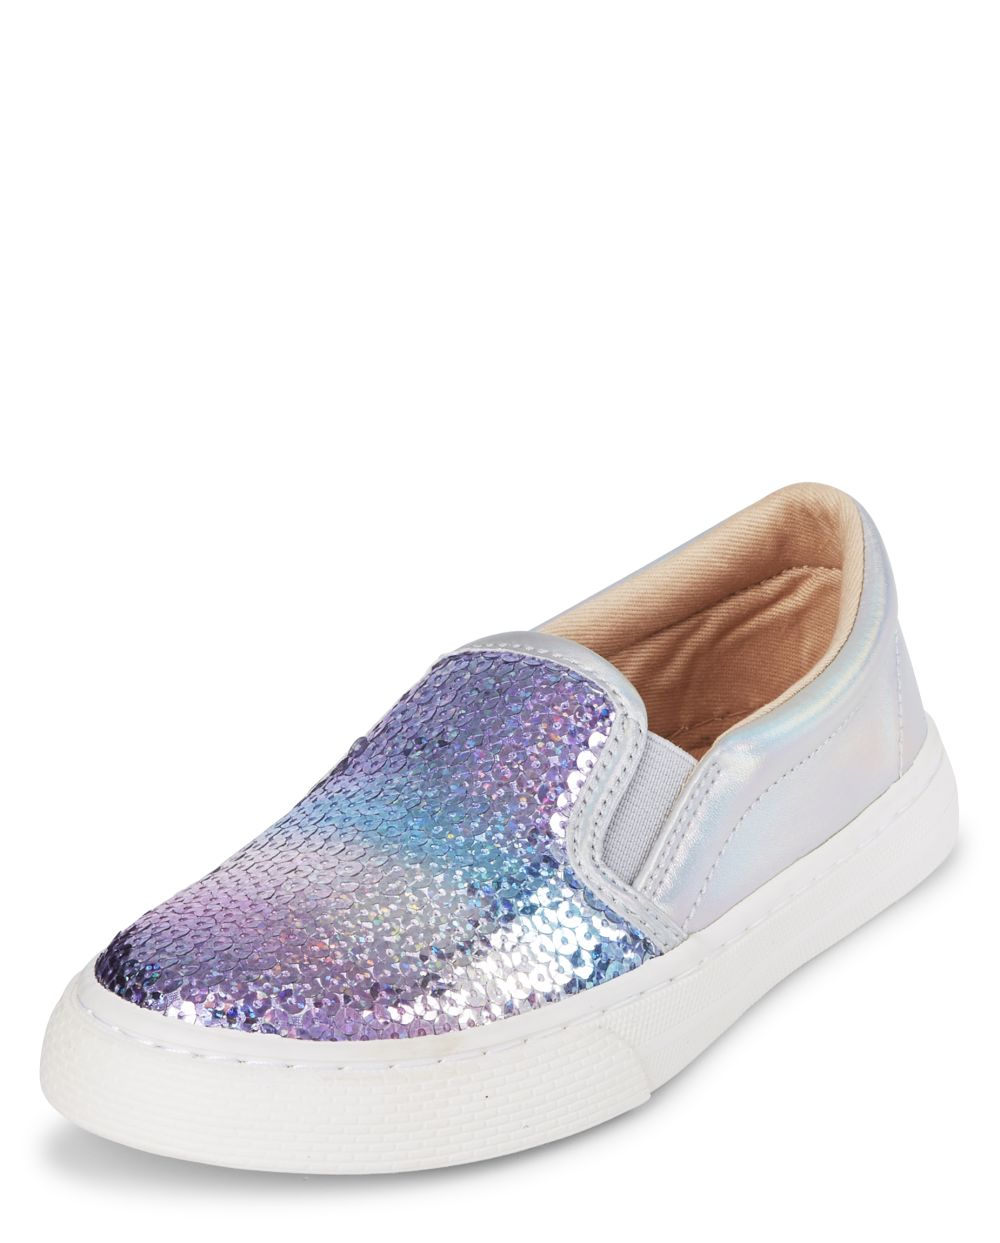 Girls Sequin Slip On Sneakers